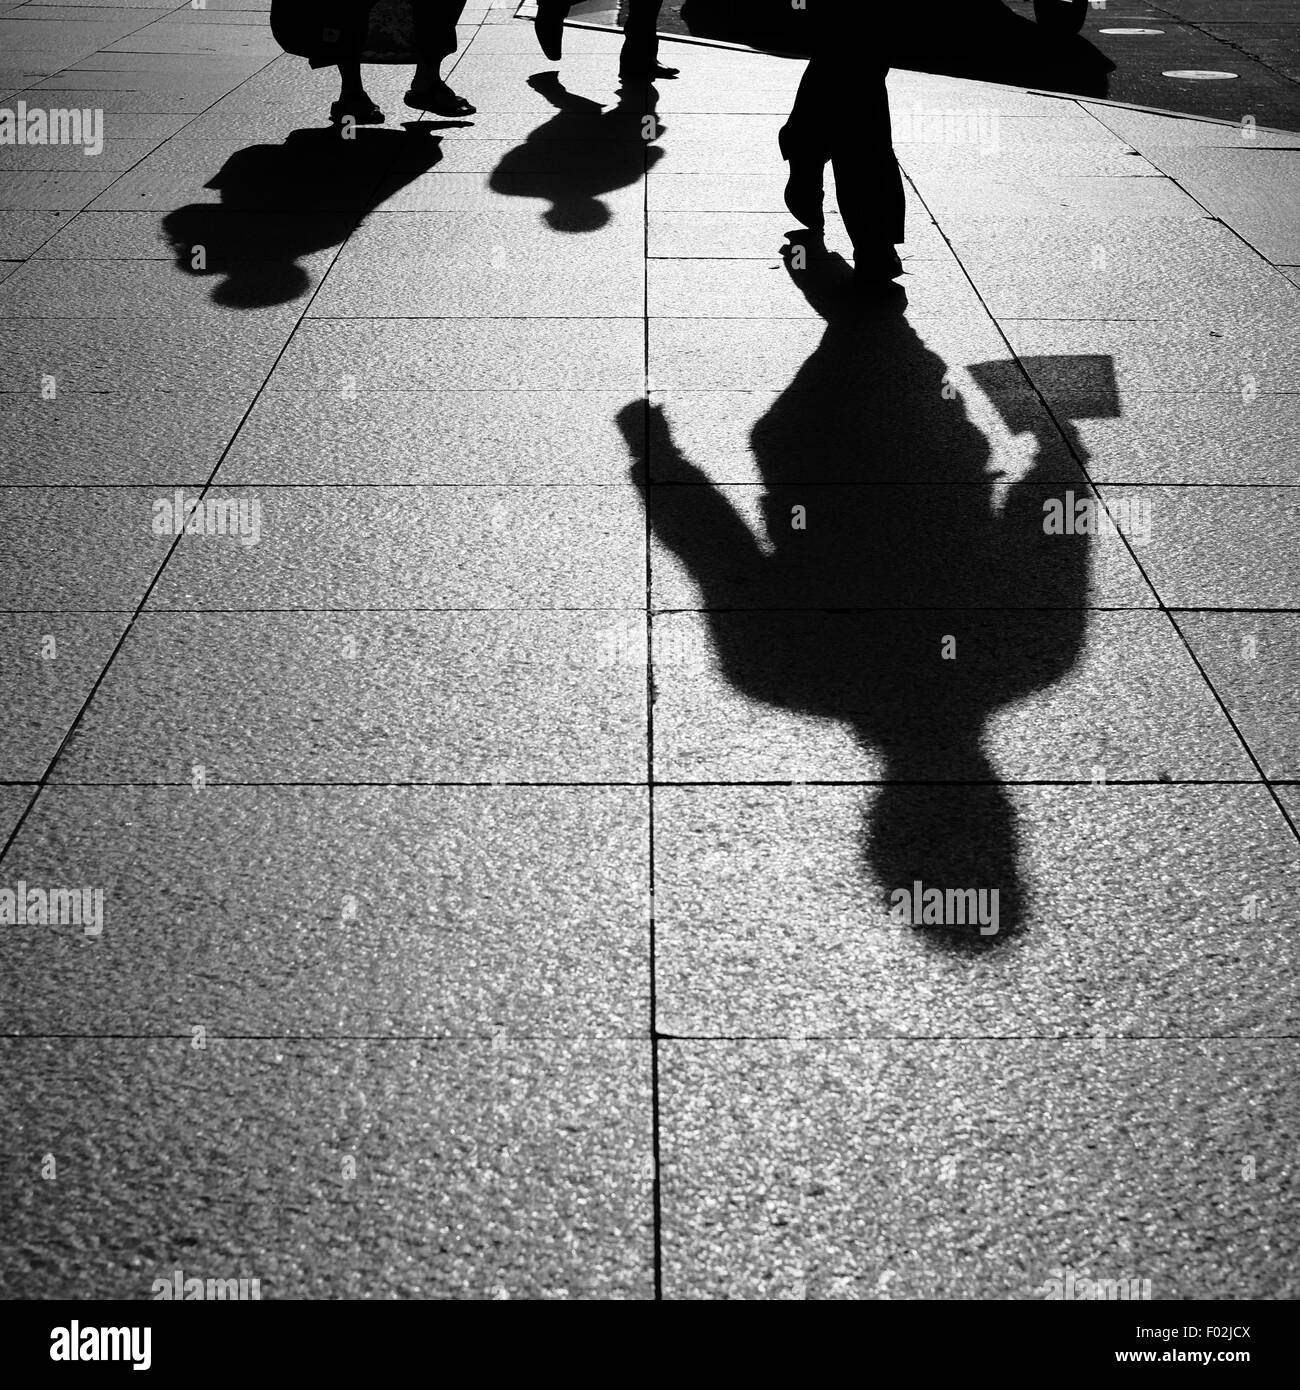 Shadows and Silhouettes of people walking on street in city - Stock Image